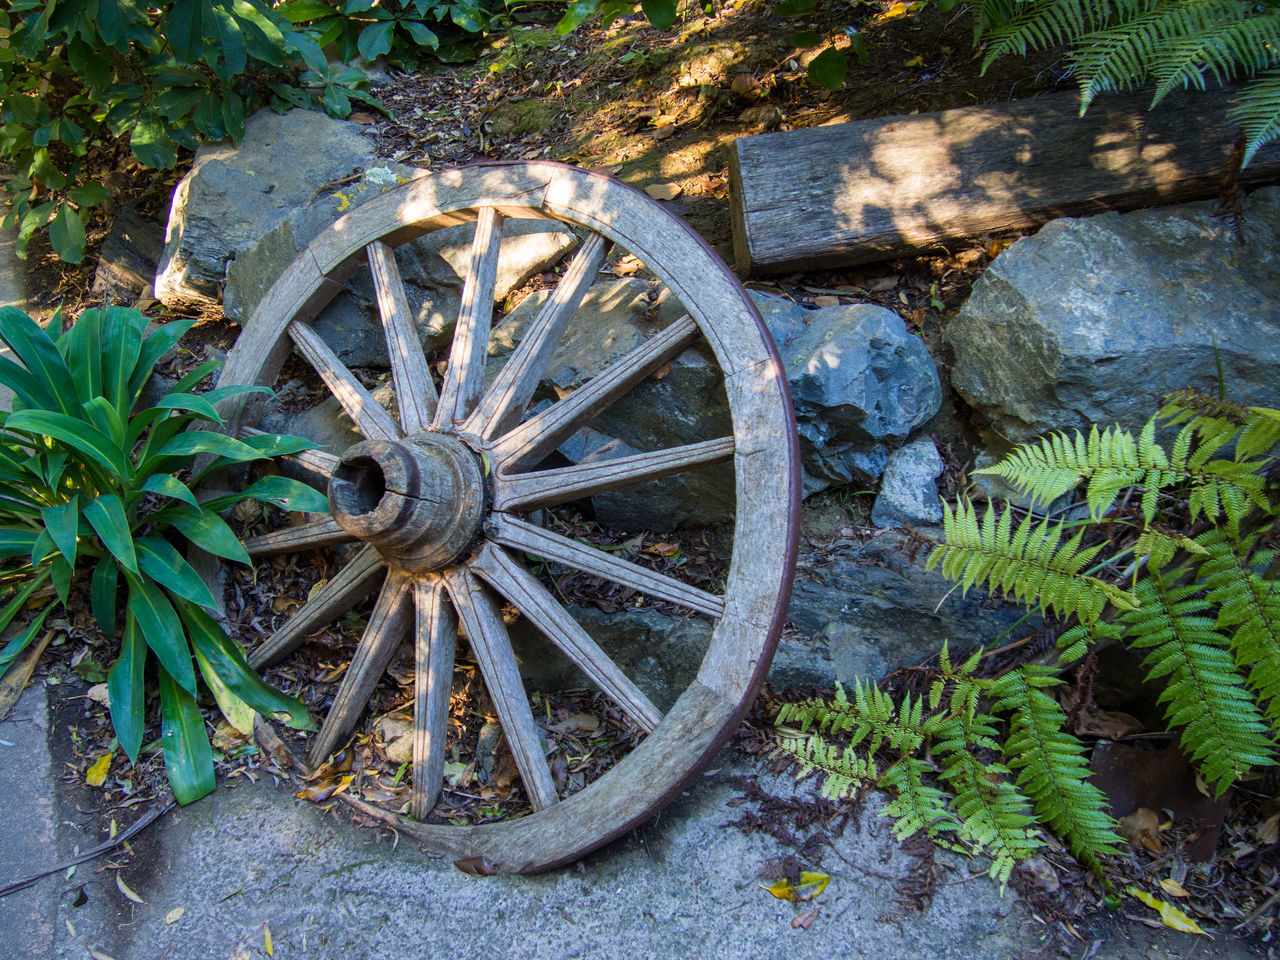 wagon wheel, wheel, transportation, day, outdoors, old-fashioned, no people, abandoned, horse cart, leaf, plant, growth, nature